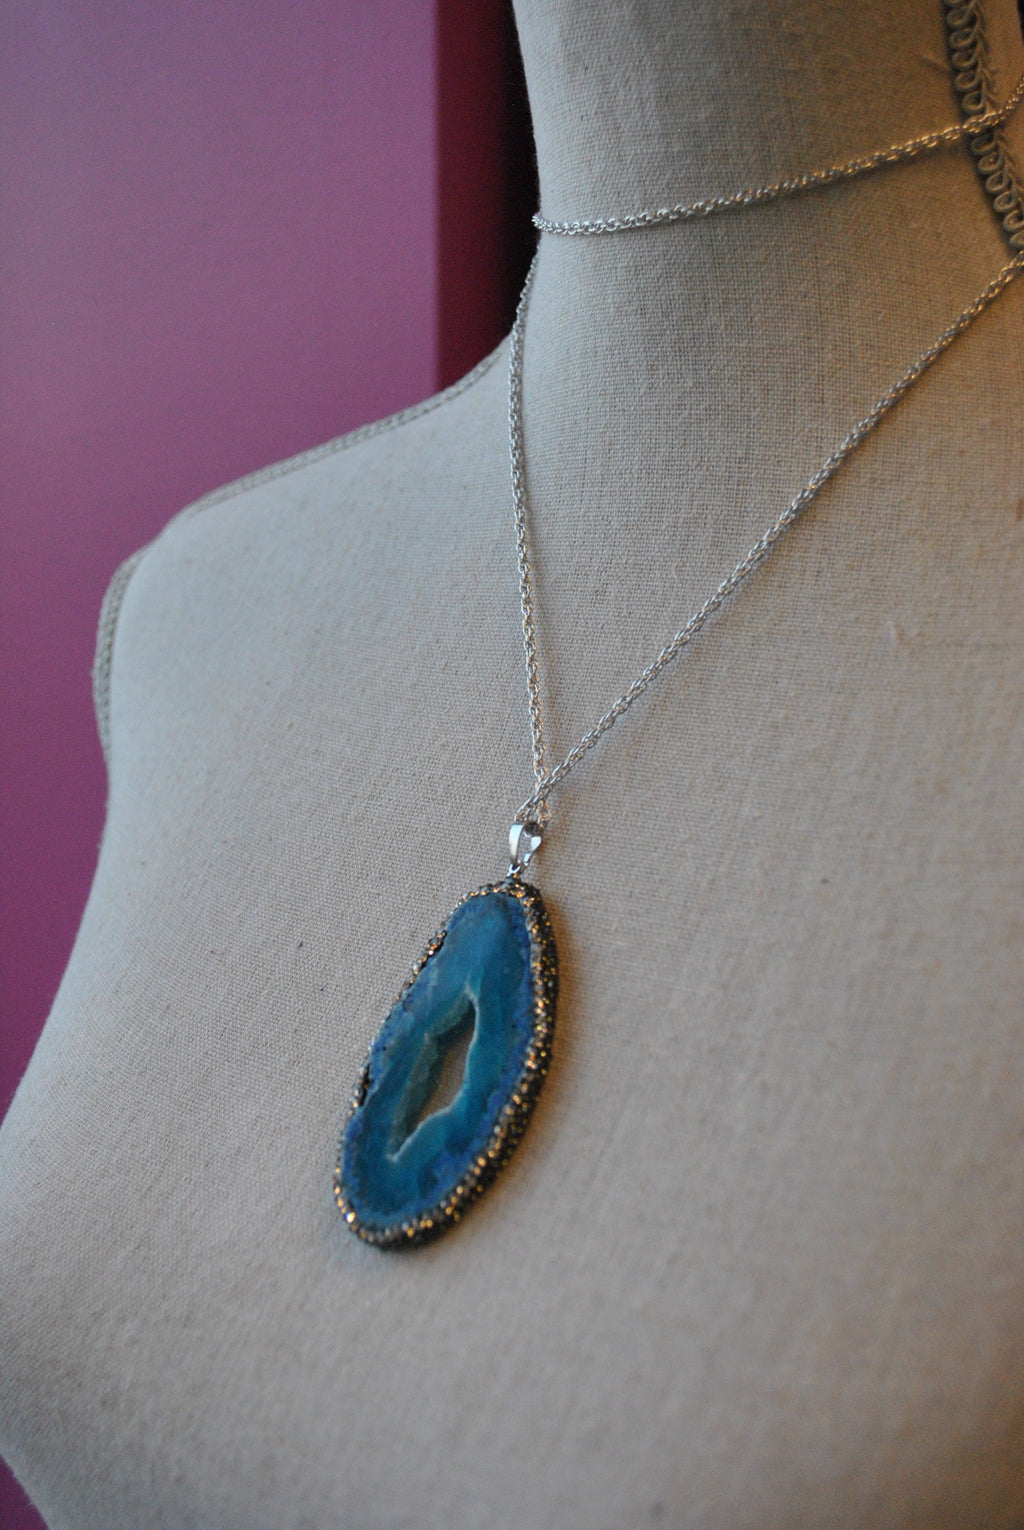 BLUE AGATE FREEFORM WITH SWAROVSKI CRYSTALS LONG CHAIN PENDANT